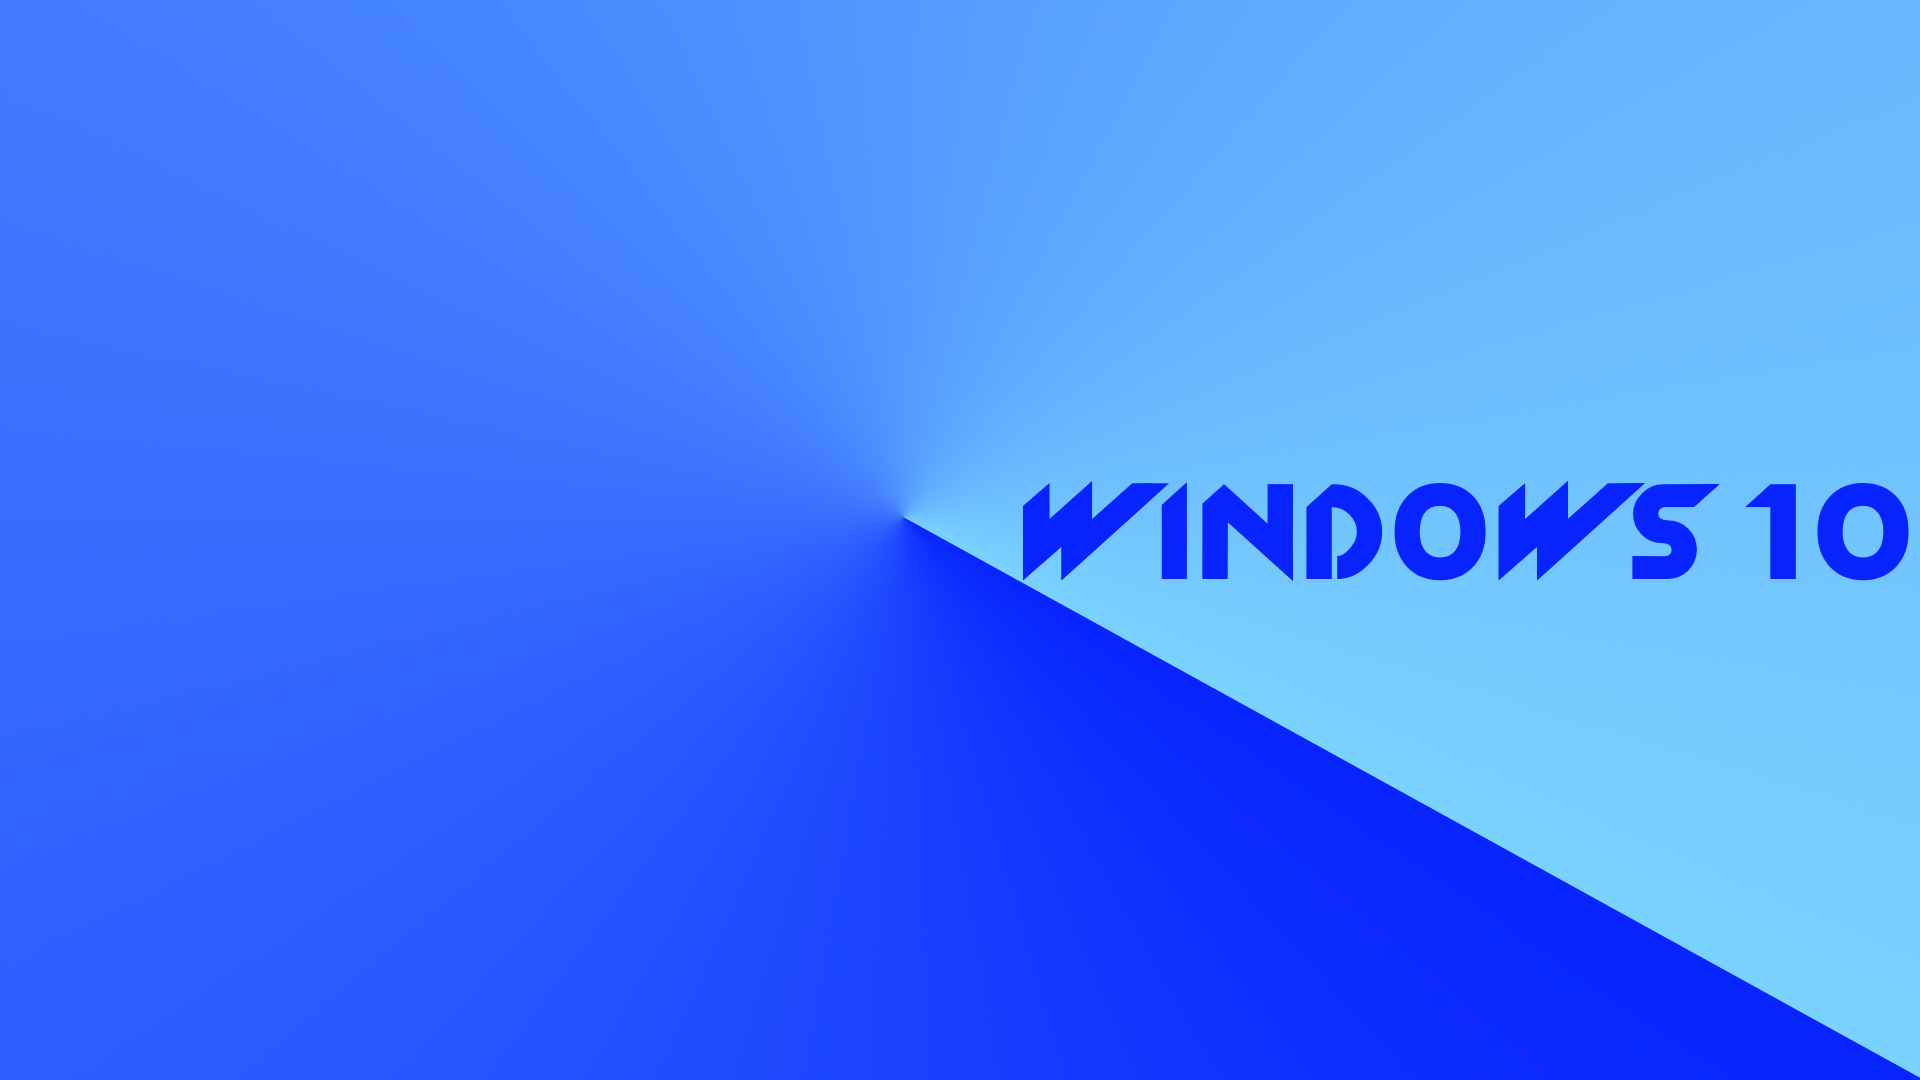 Windows 10 simple blue wallpapers